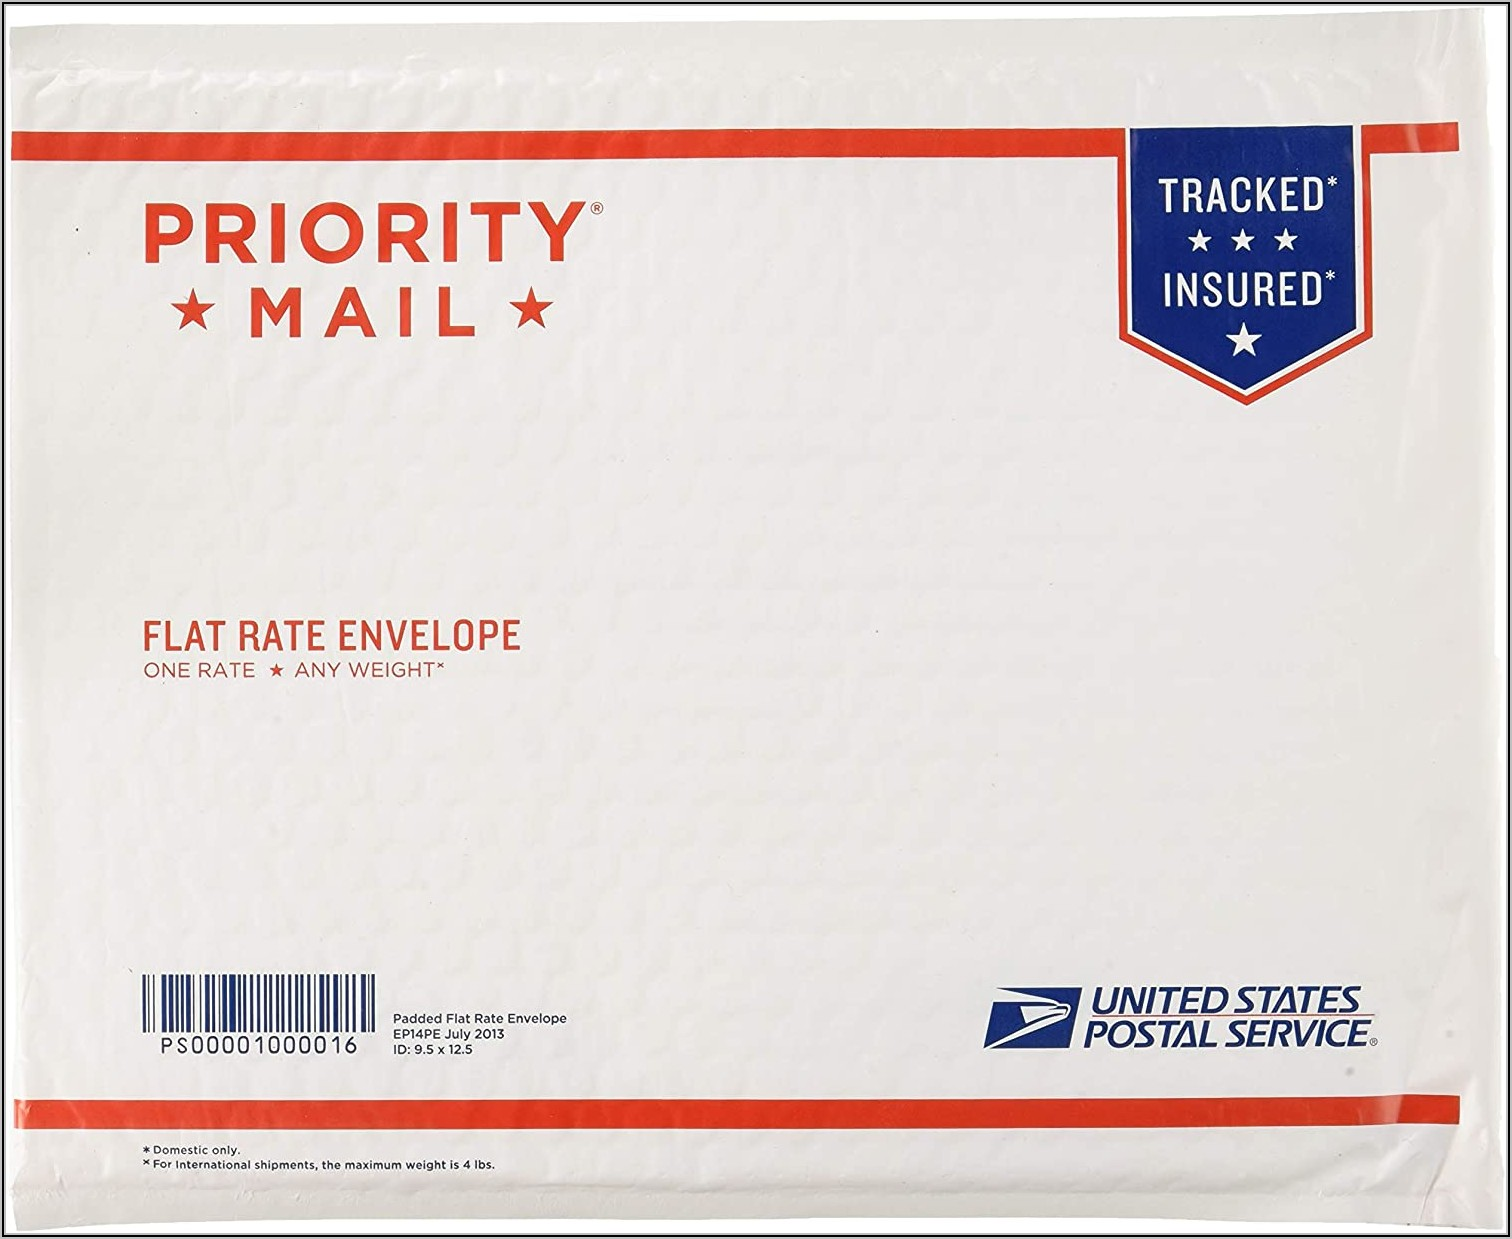 Usps Flat Rate Envelope Postage